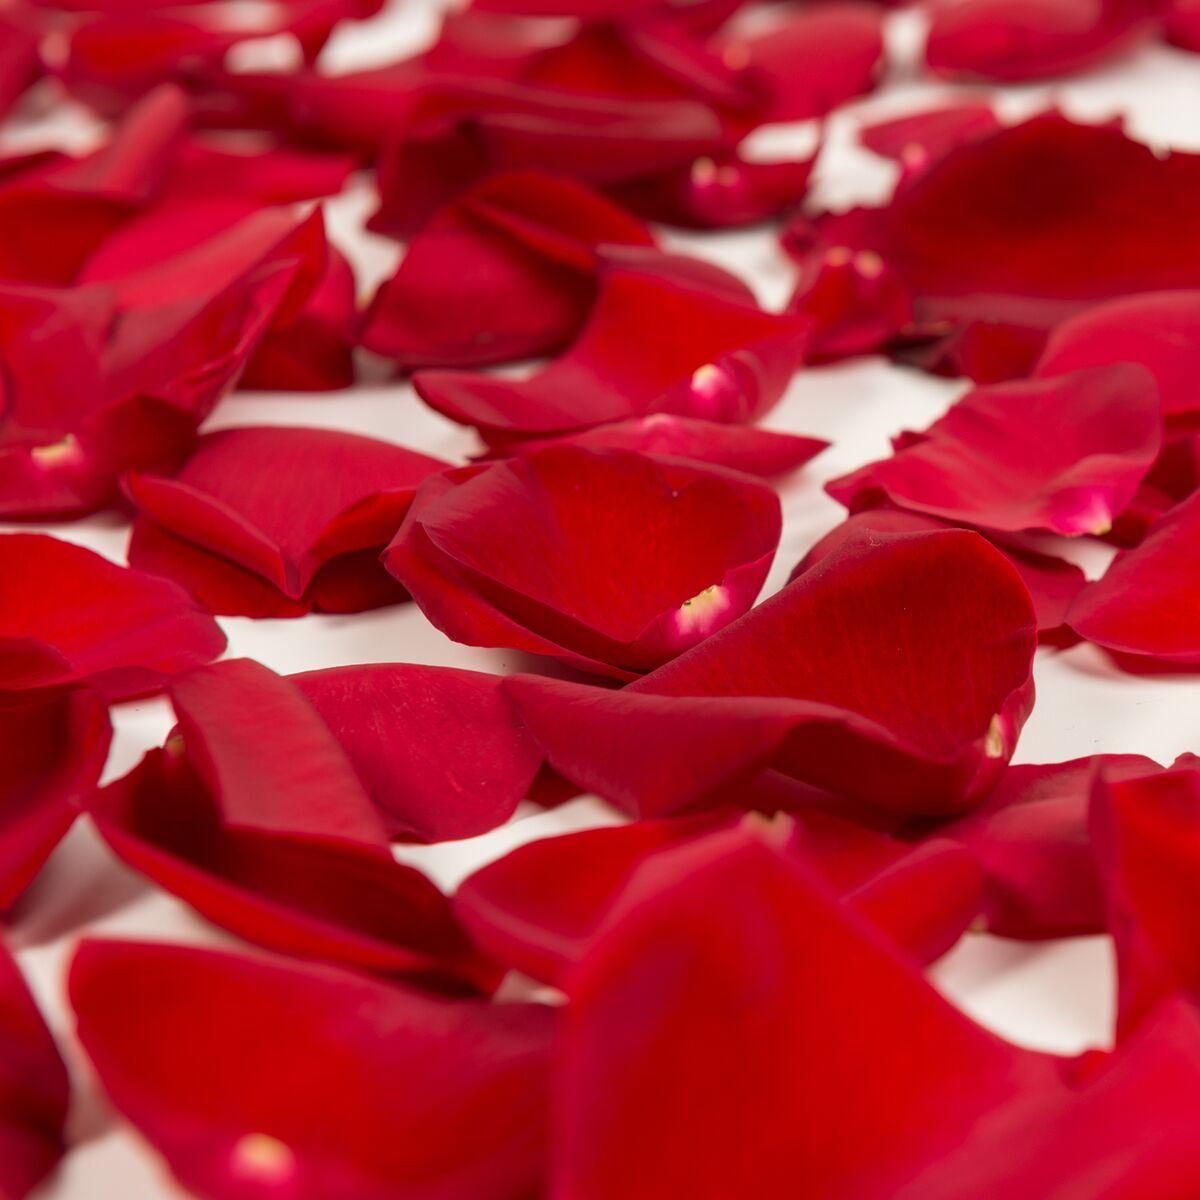 Natural Fresh Flowers - Red Rose Petals, Approximately 3000 petals